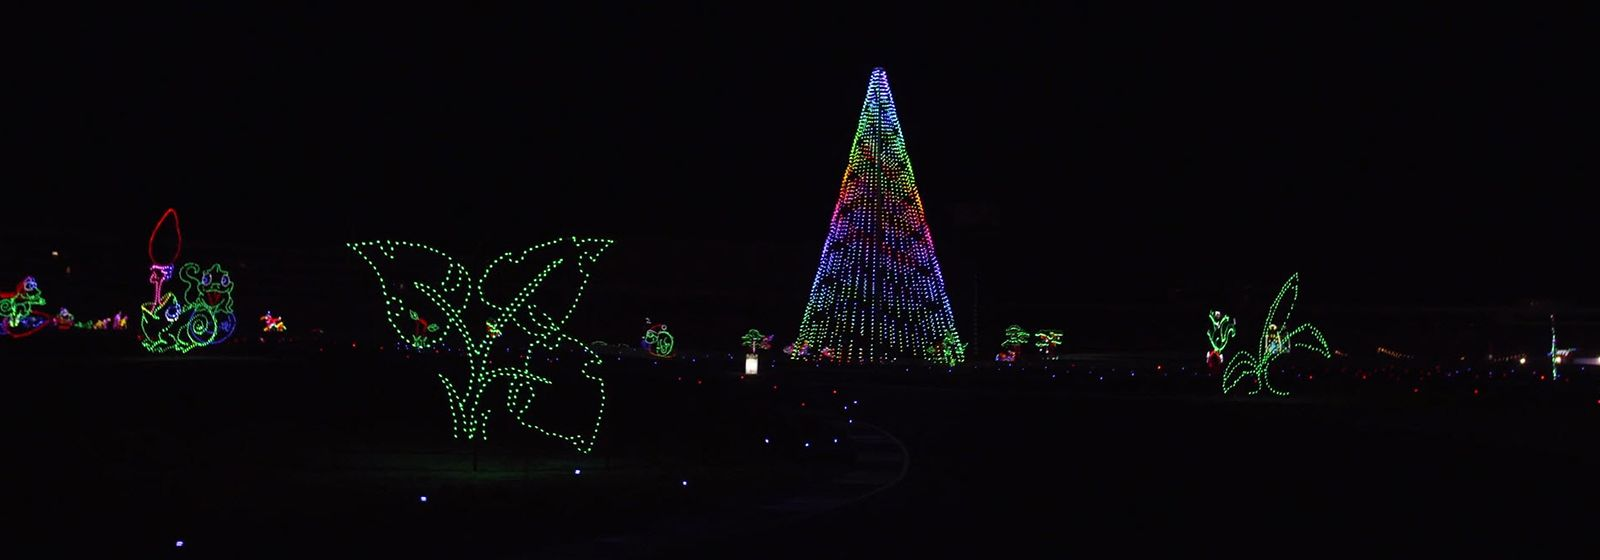 Millions of LEDs dazzle at Charlotte Motor Speedway for the holidays